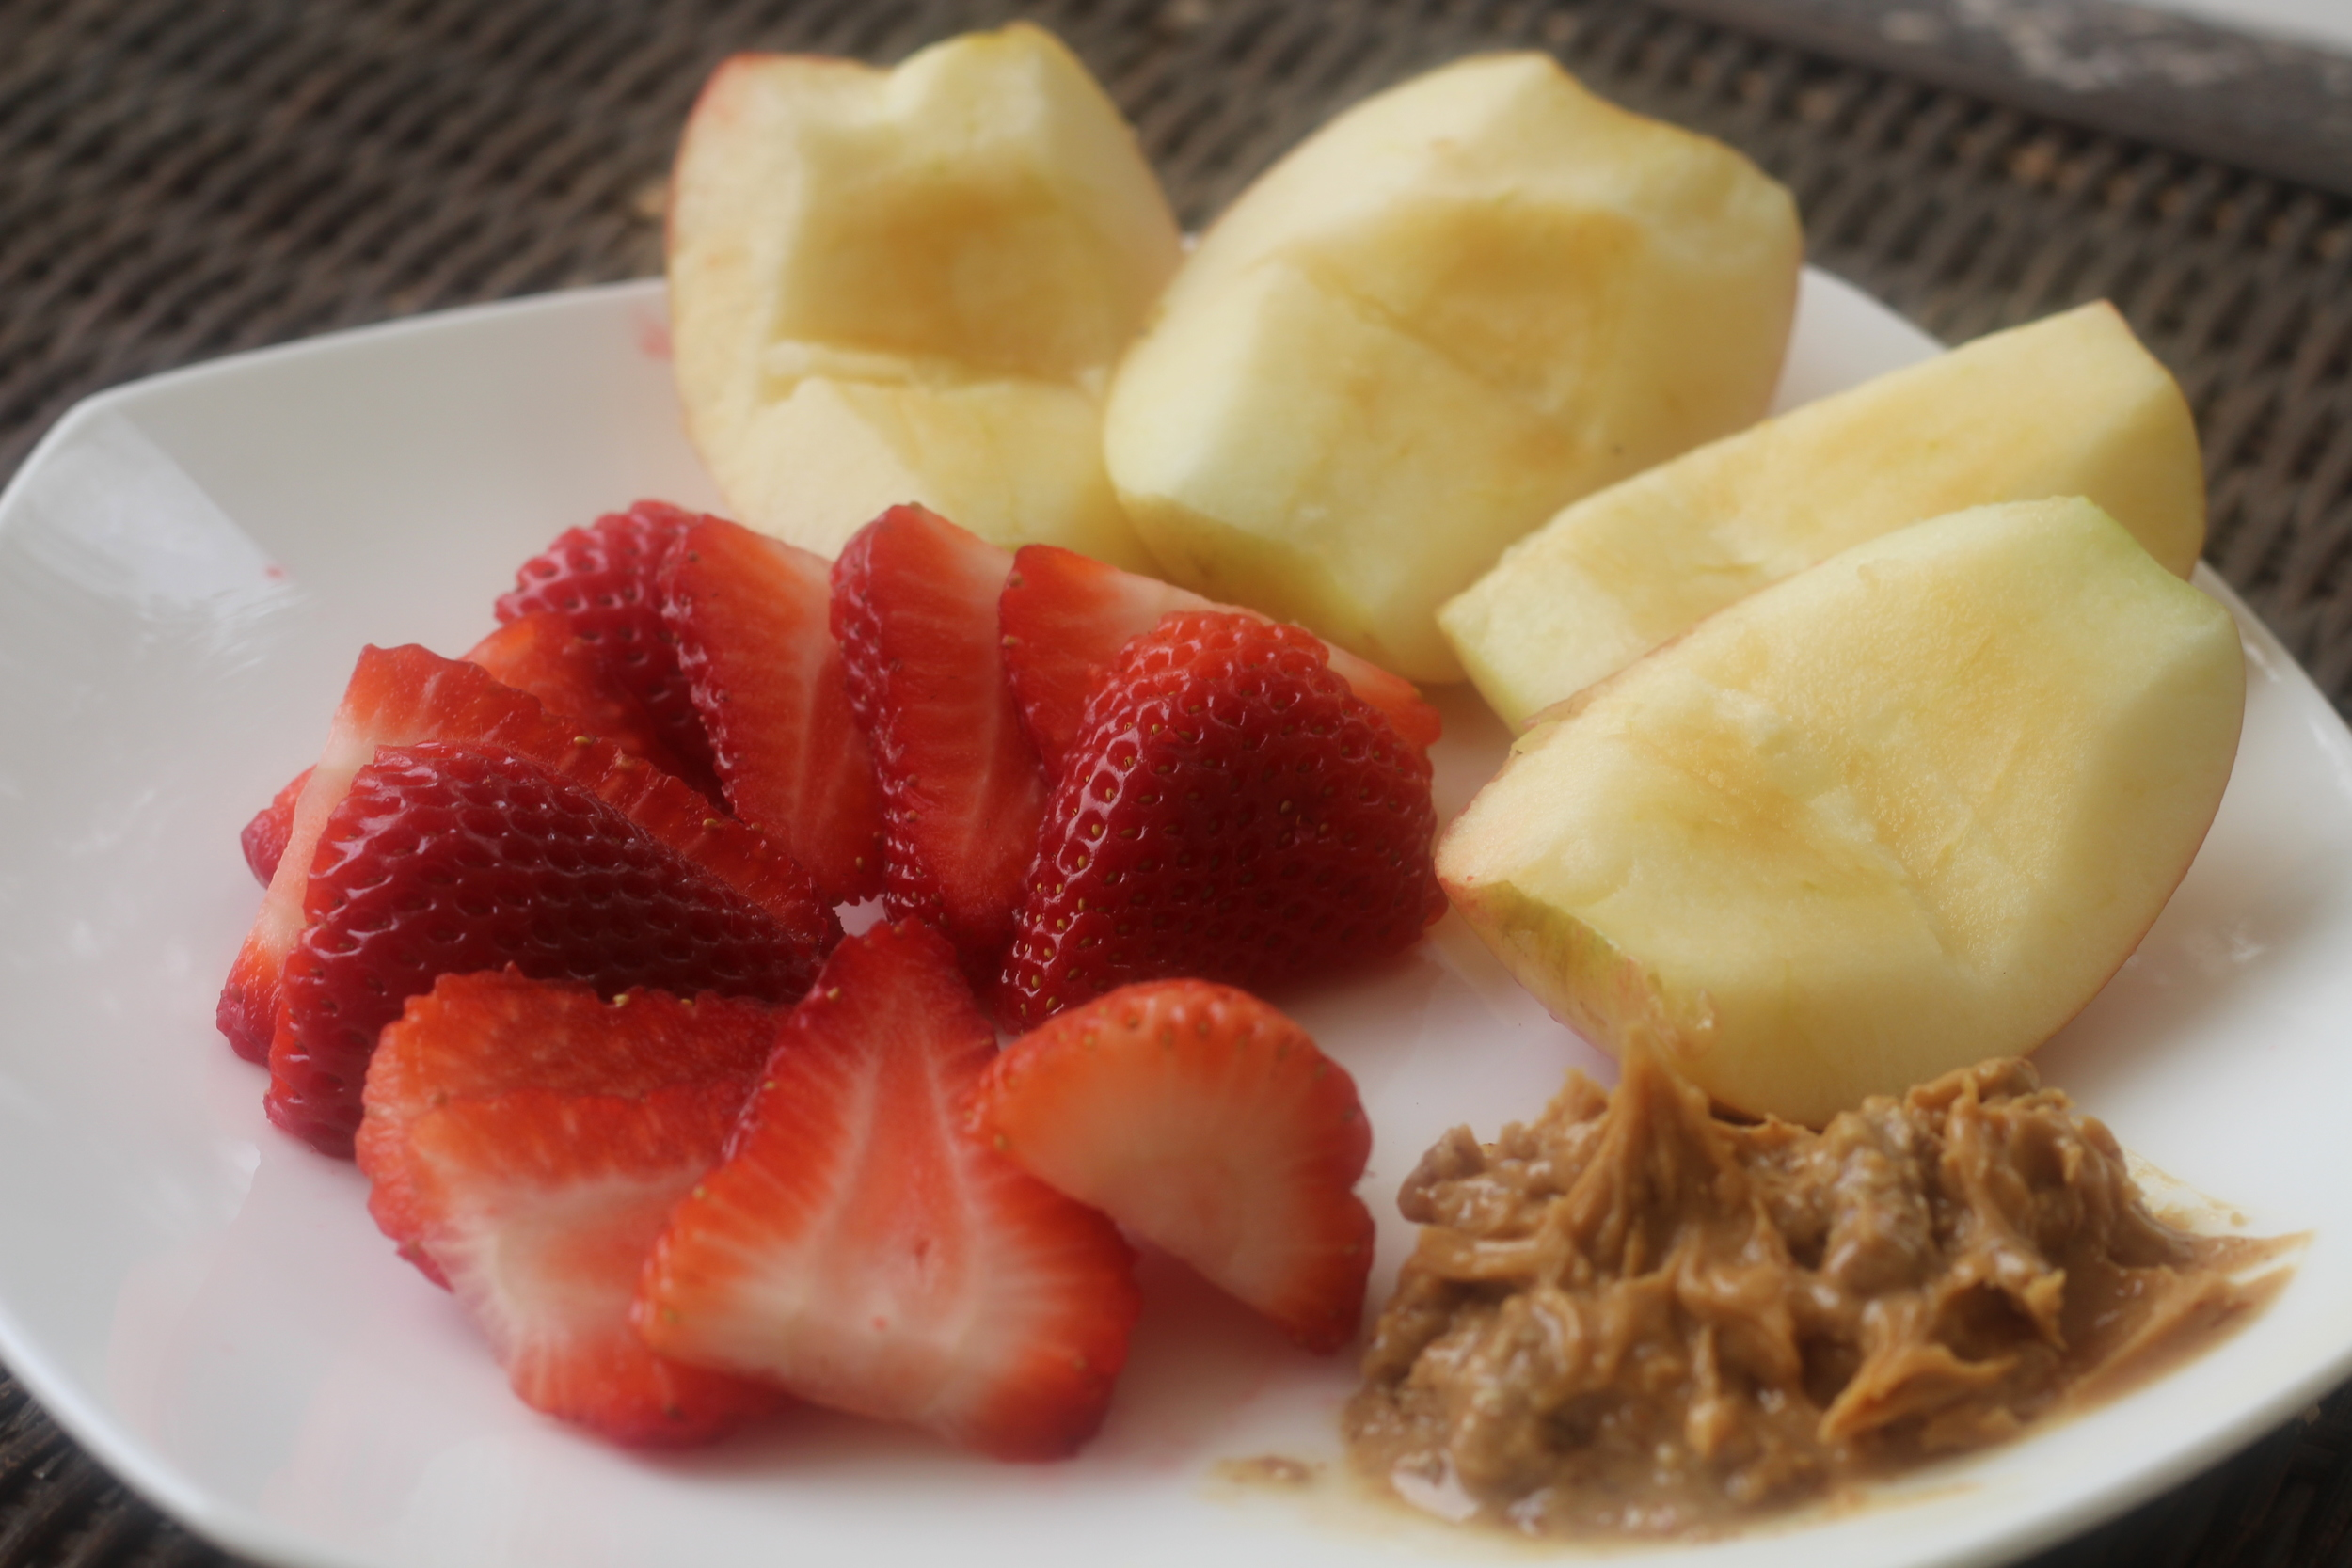 Dessert: Strawberries and Gala Apple with Almond Butter